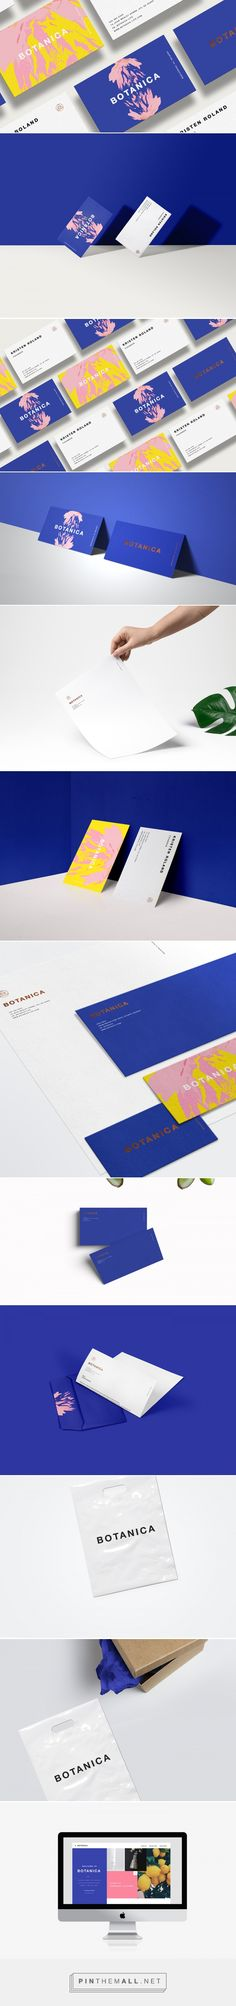 Botanica Lifestyle Blog Branding by Claudia Argueta | Fivestar Branding Agency – Design and Branding Agency & Curated Inspiration Gallery